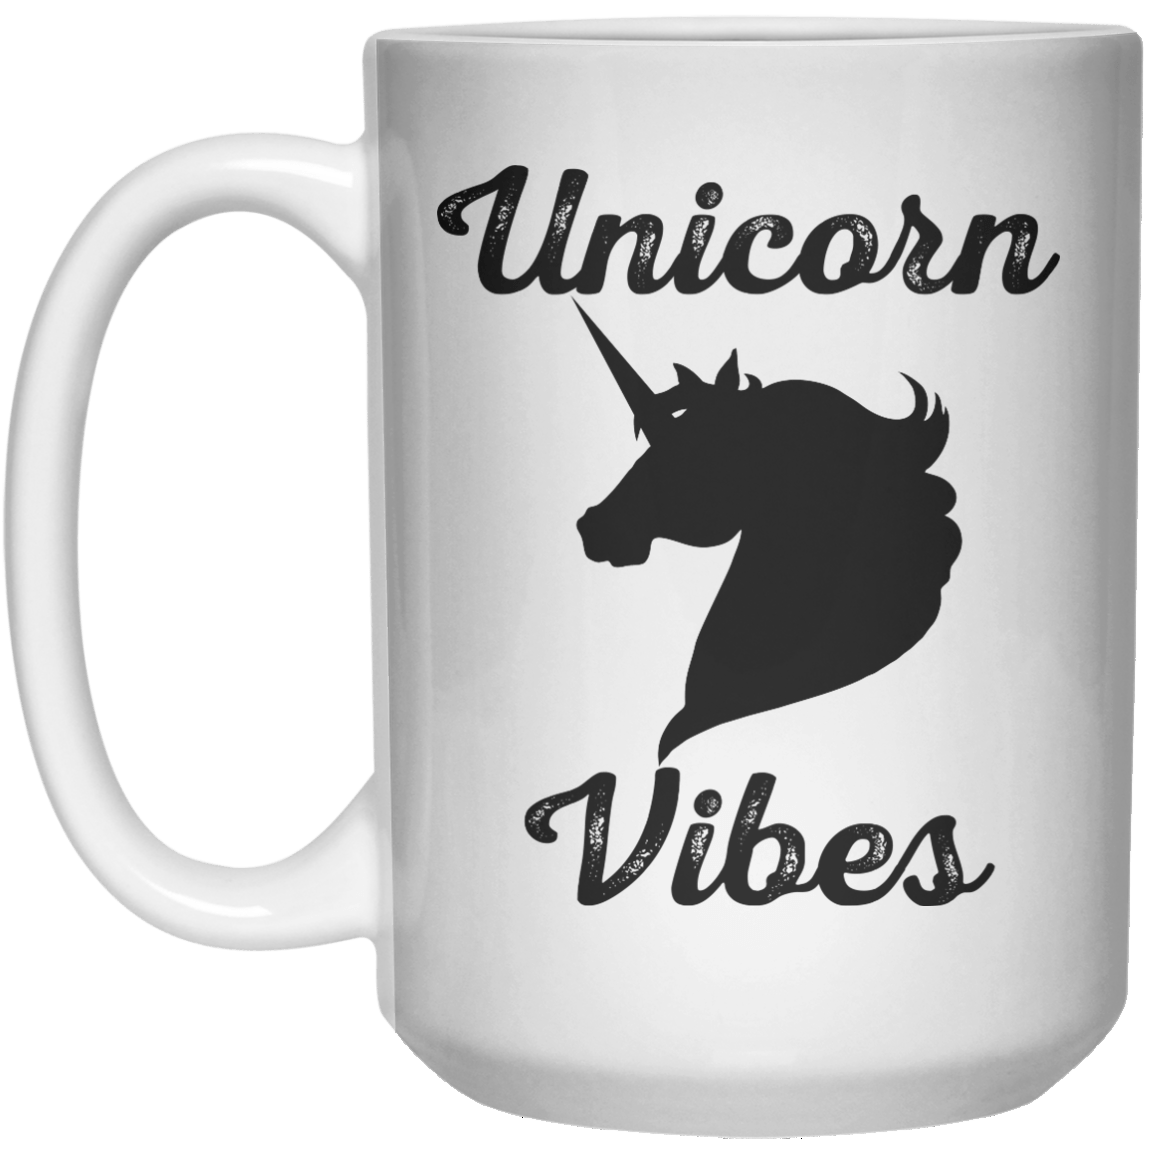 unicorn vibers MUG  Mug - 15oz - Shirtoopia